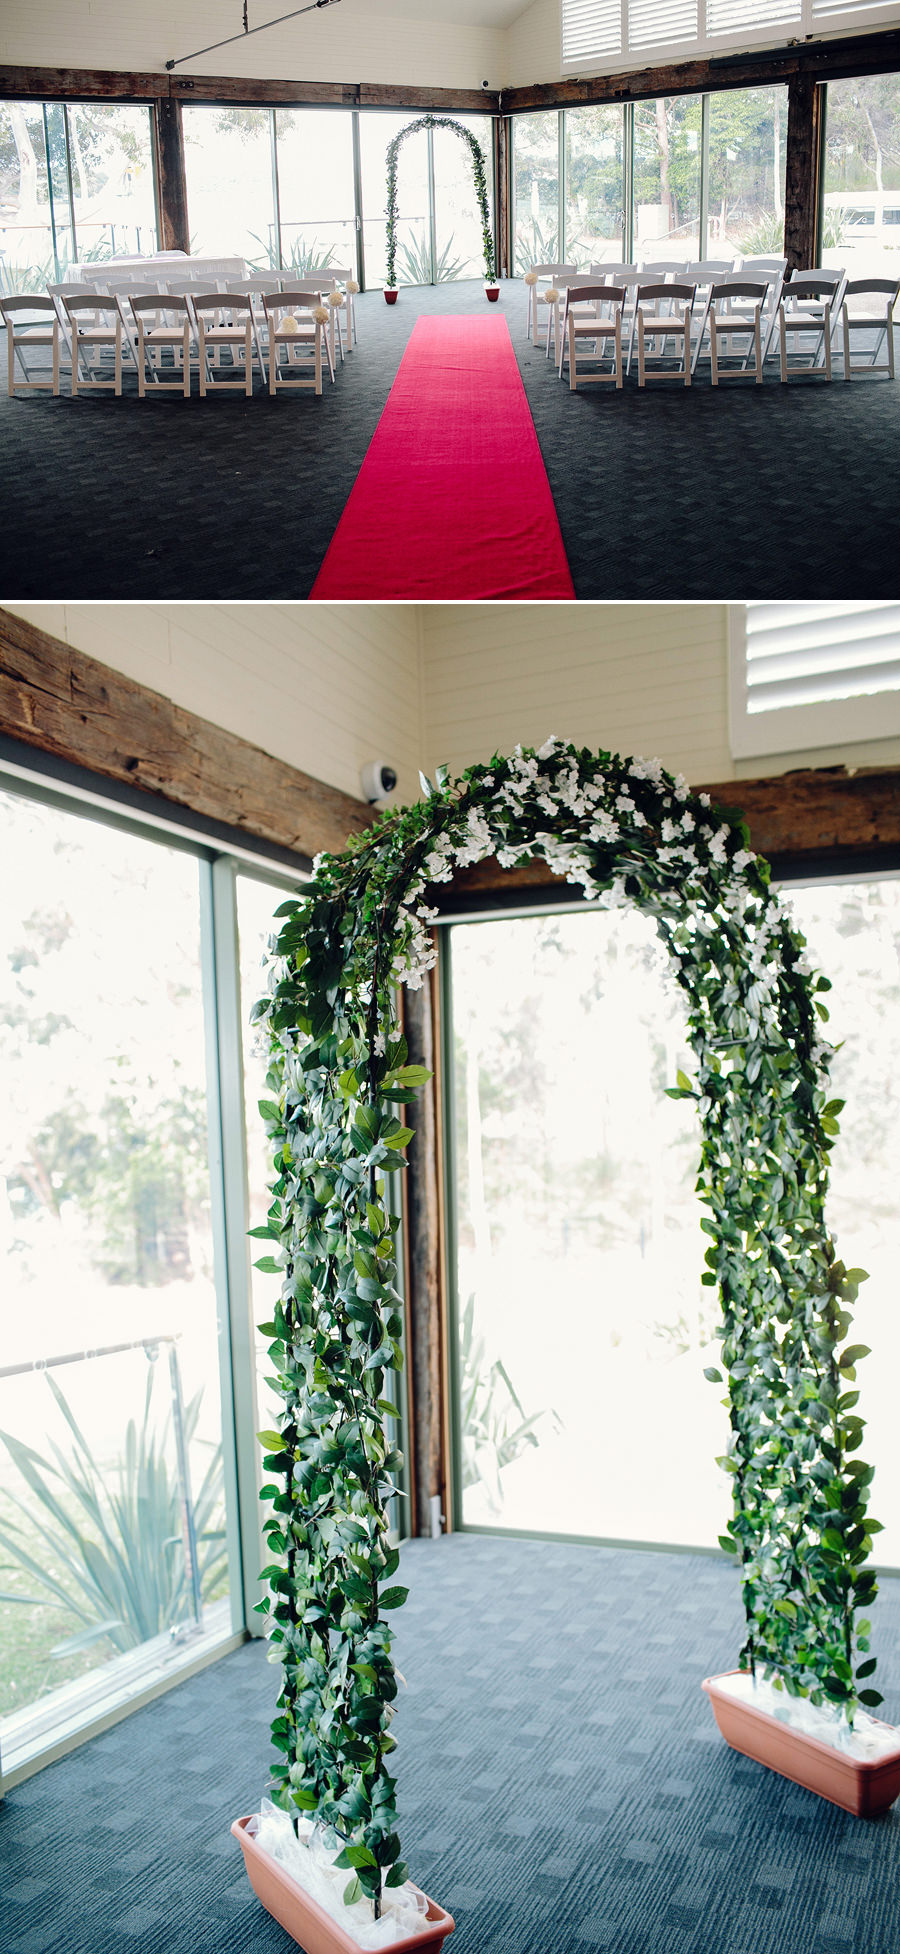 Deckhouse Wedding Photographer: Bridal arch